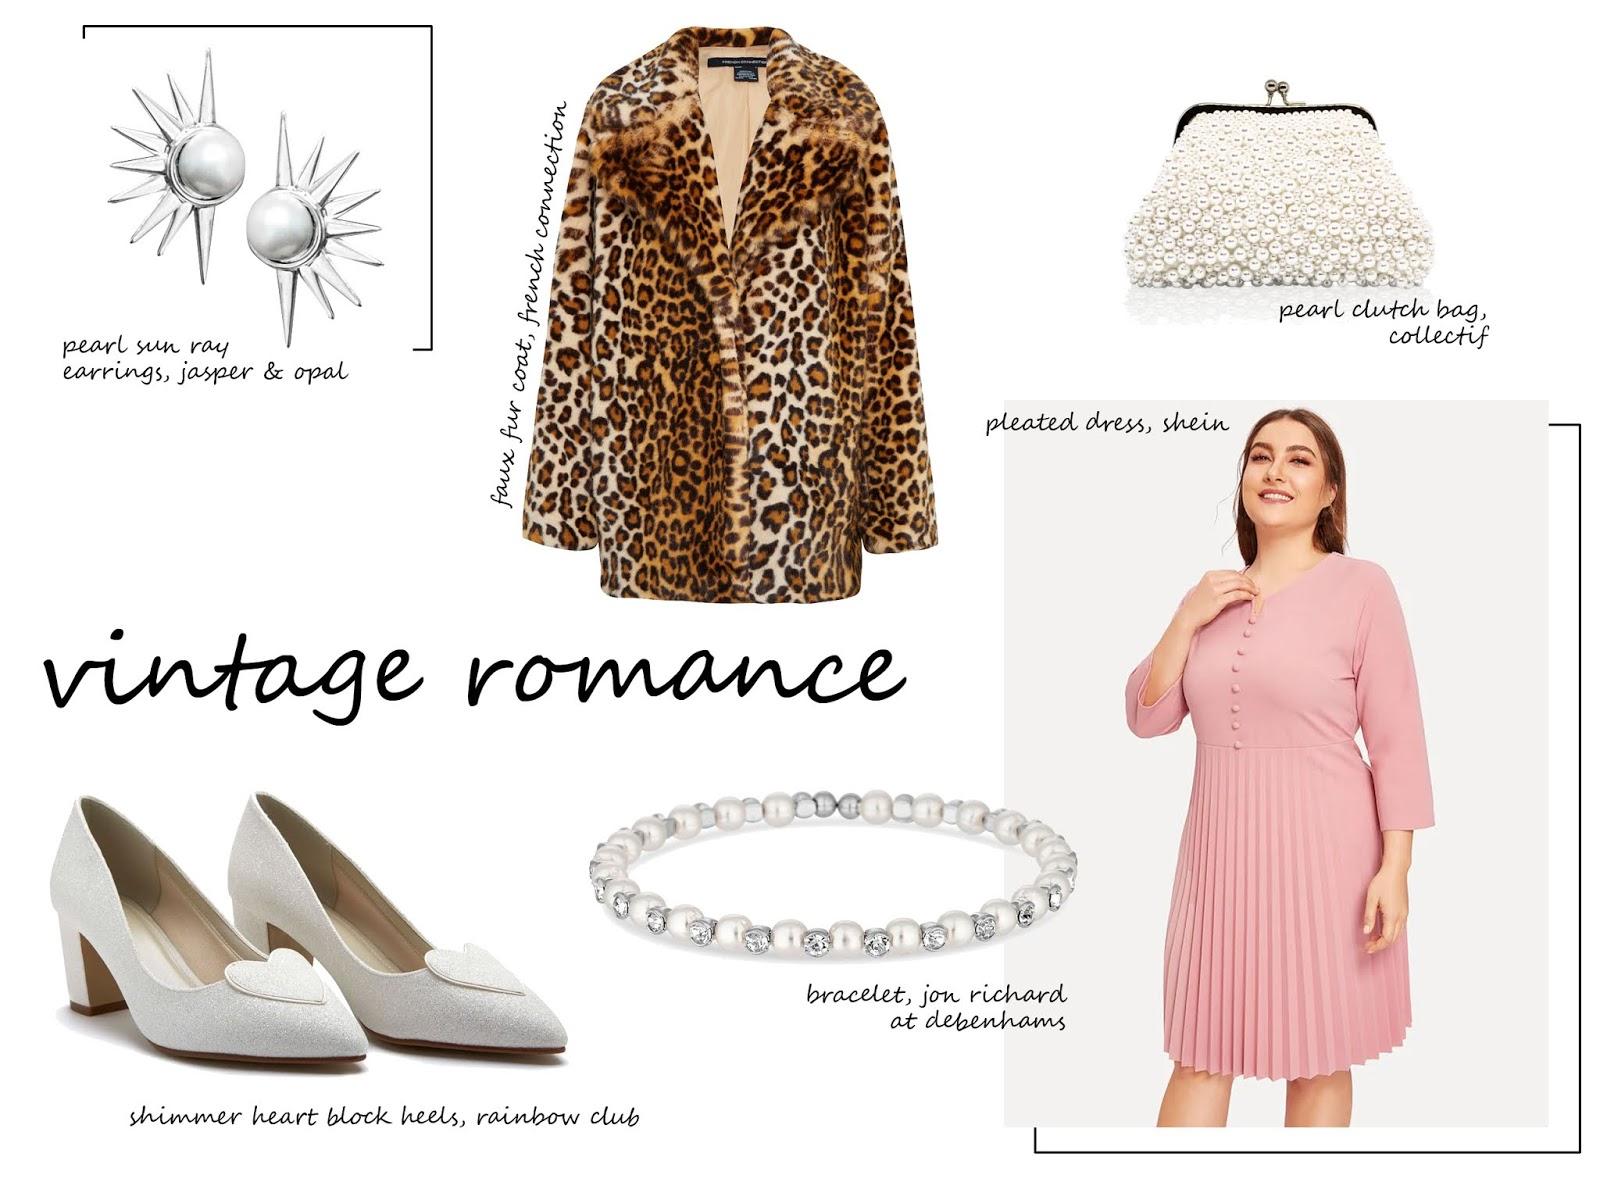 9fdeaad6b7 Rose Pleated Dress - Shein | Faux Fur Coat - French Connection | Shimmer  Heart Block Heels - Rainbow Club | Claudia Pearl Clutch Bag - Collectif |  Pearl Sun ...